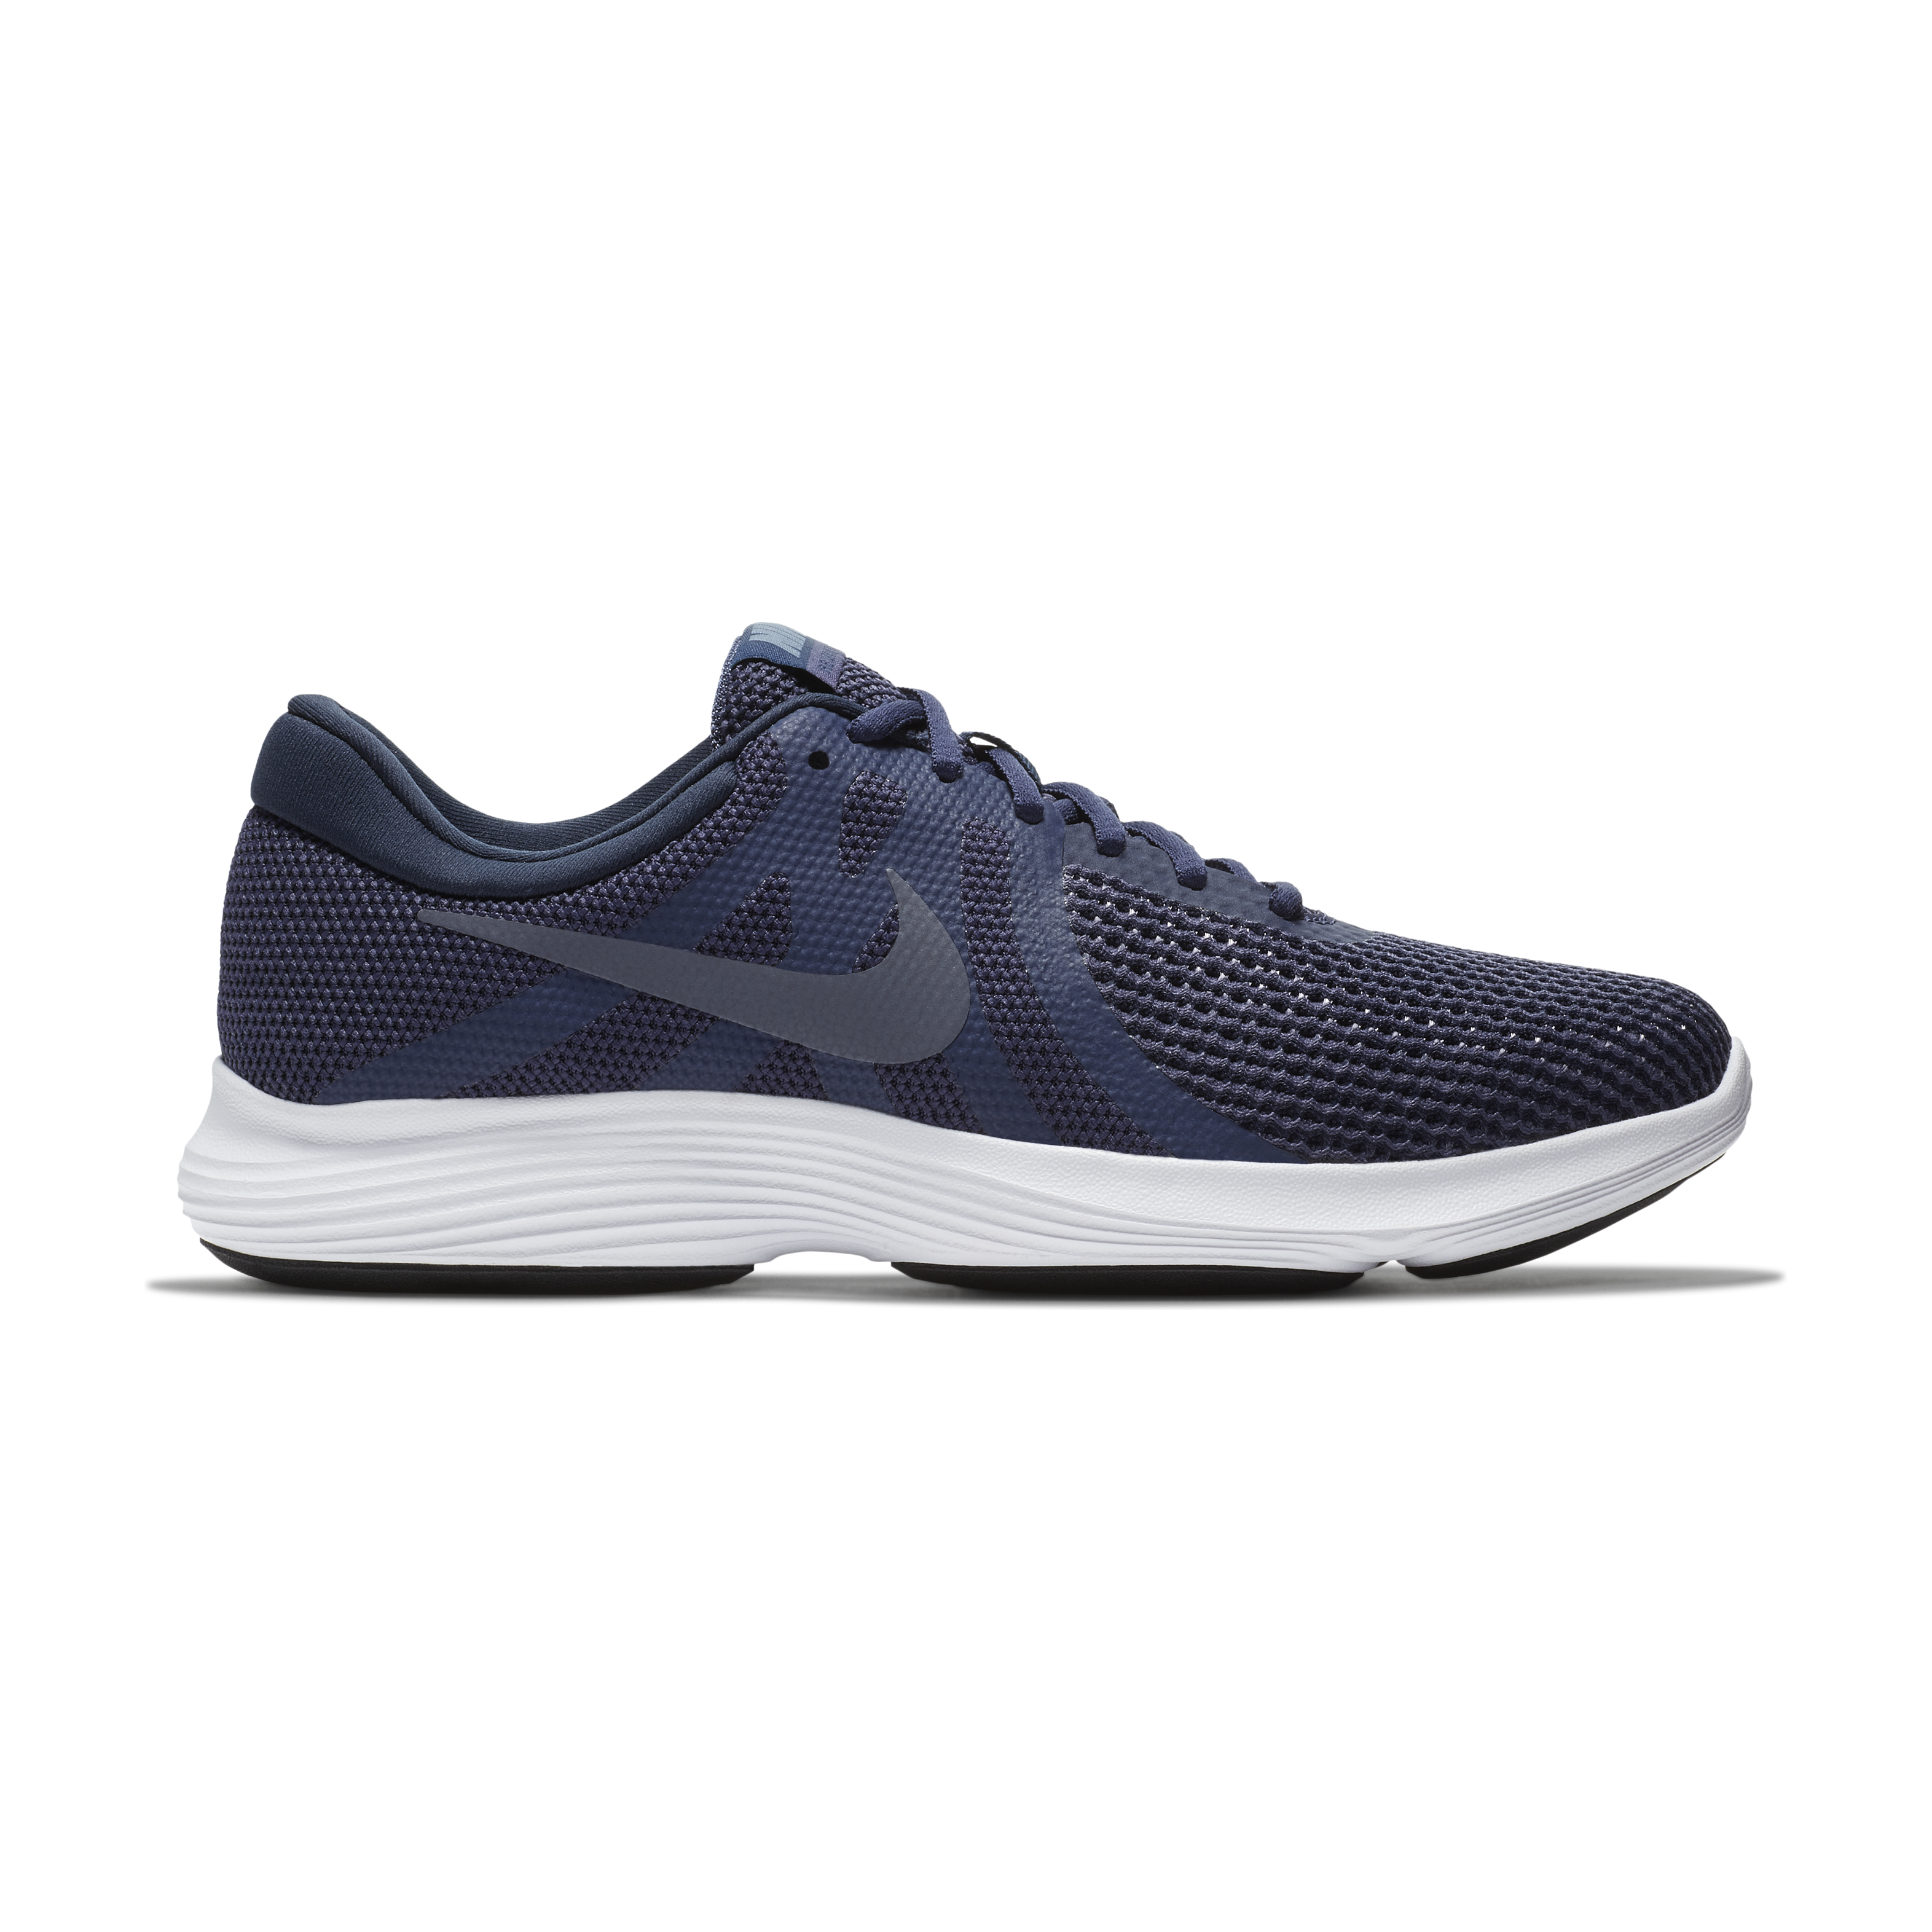 Nike Revolution 4 Mens 908988-500 Neutral Indigo Carbon Running Shoes Size 8